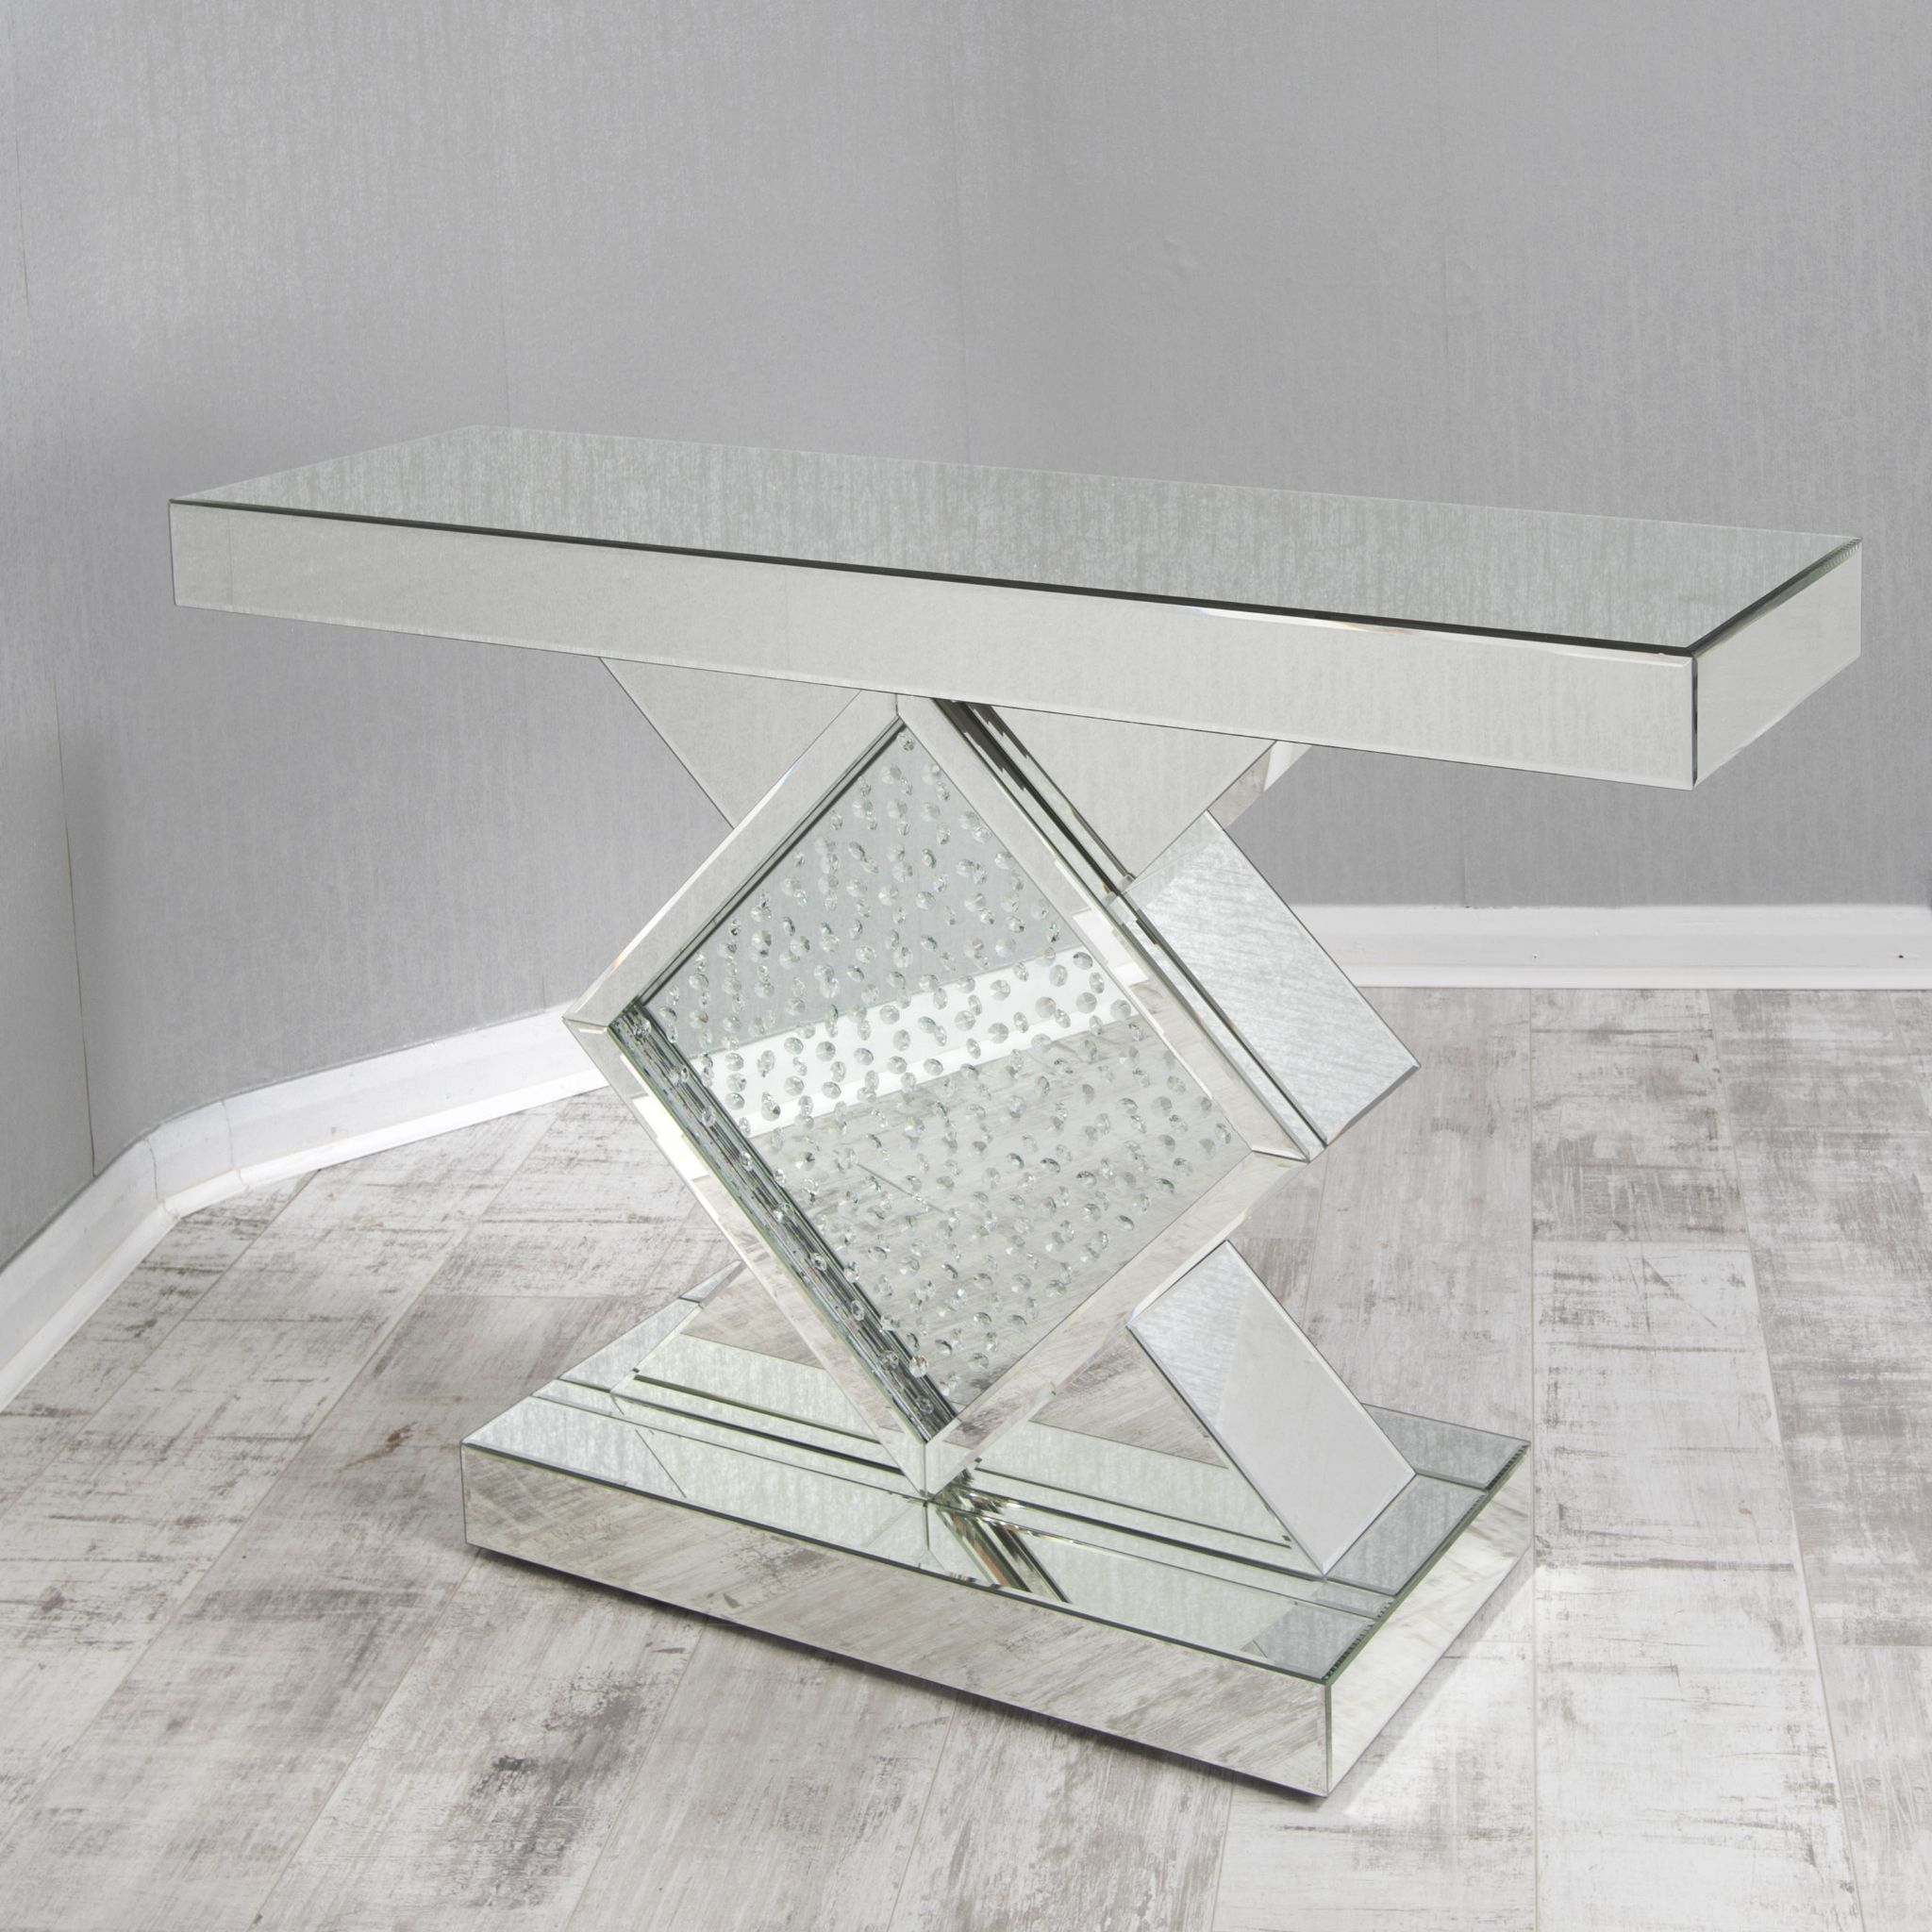 Mirrored glass floating crystal statement table Mirror glass furniture